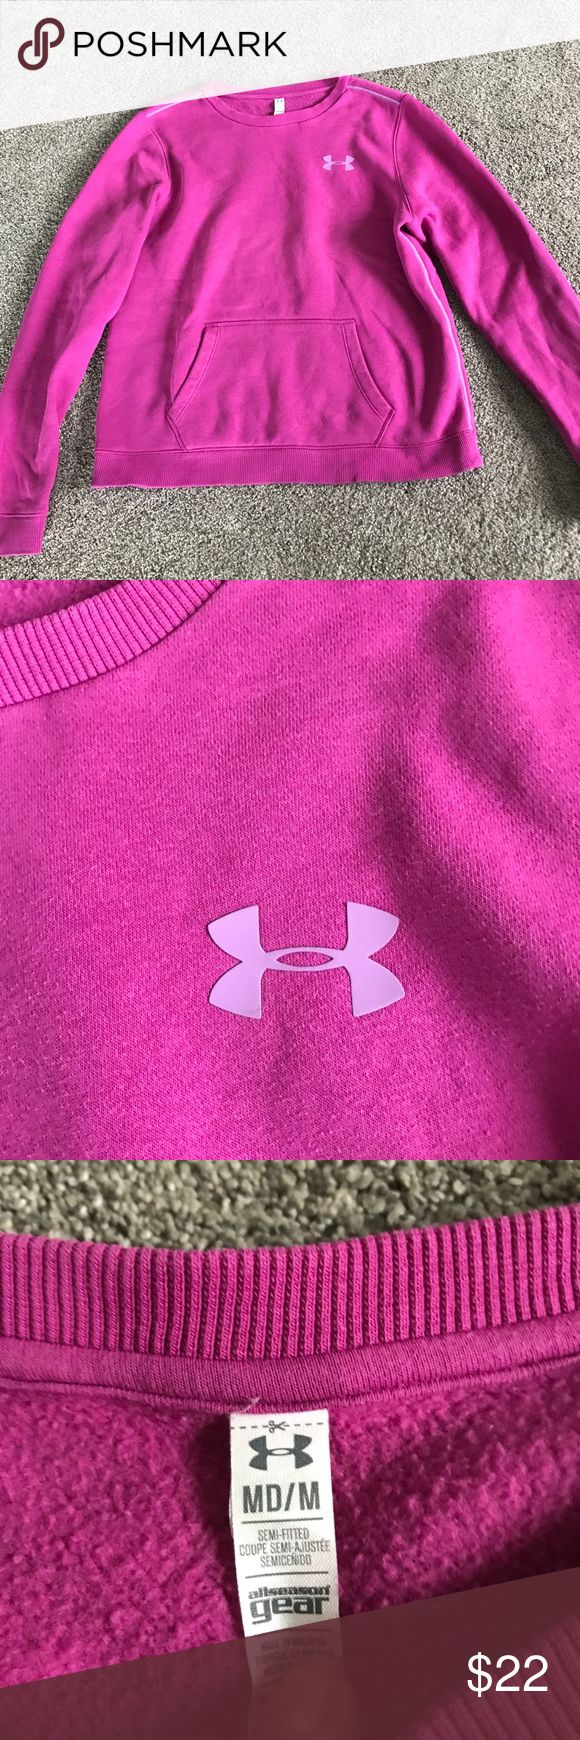 Women's Underwear Armour crew sweatshirt sz Med Women's Under Armour crewneck sweatshirt size medium! Good preowned condition! Smoke free home! A pinkish purple color! Under Armour Tops Sweatshirts & Hoodies